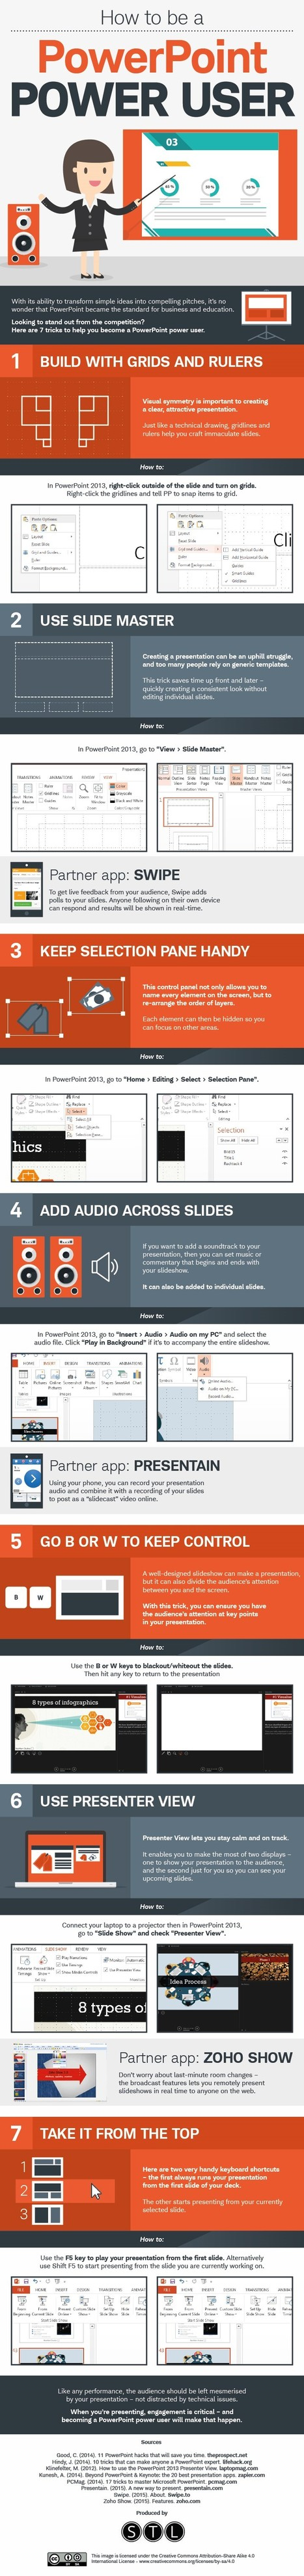 Tech It Up Tuesday: How to be a PowerPoint Power User Infographic | Moodle and Web 2.0 | Scoop.it